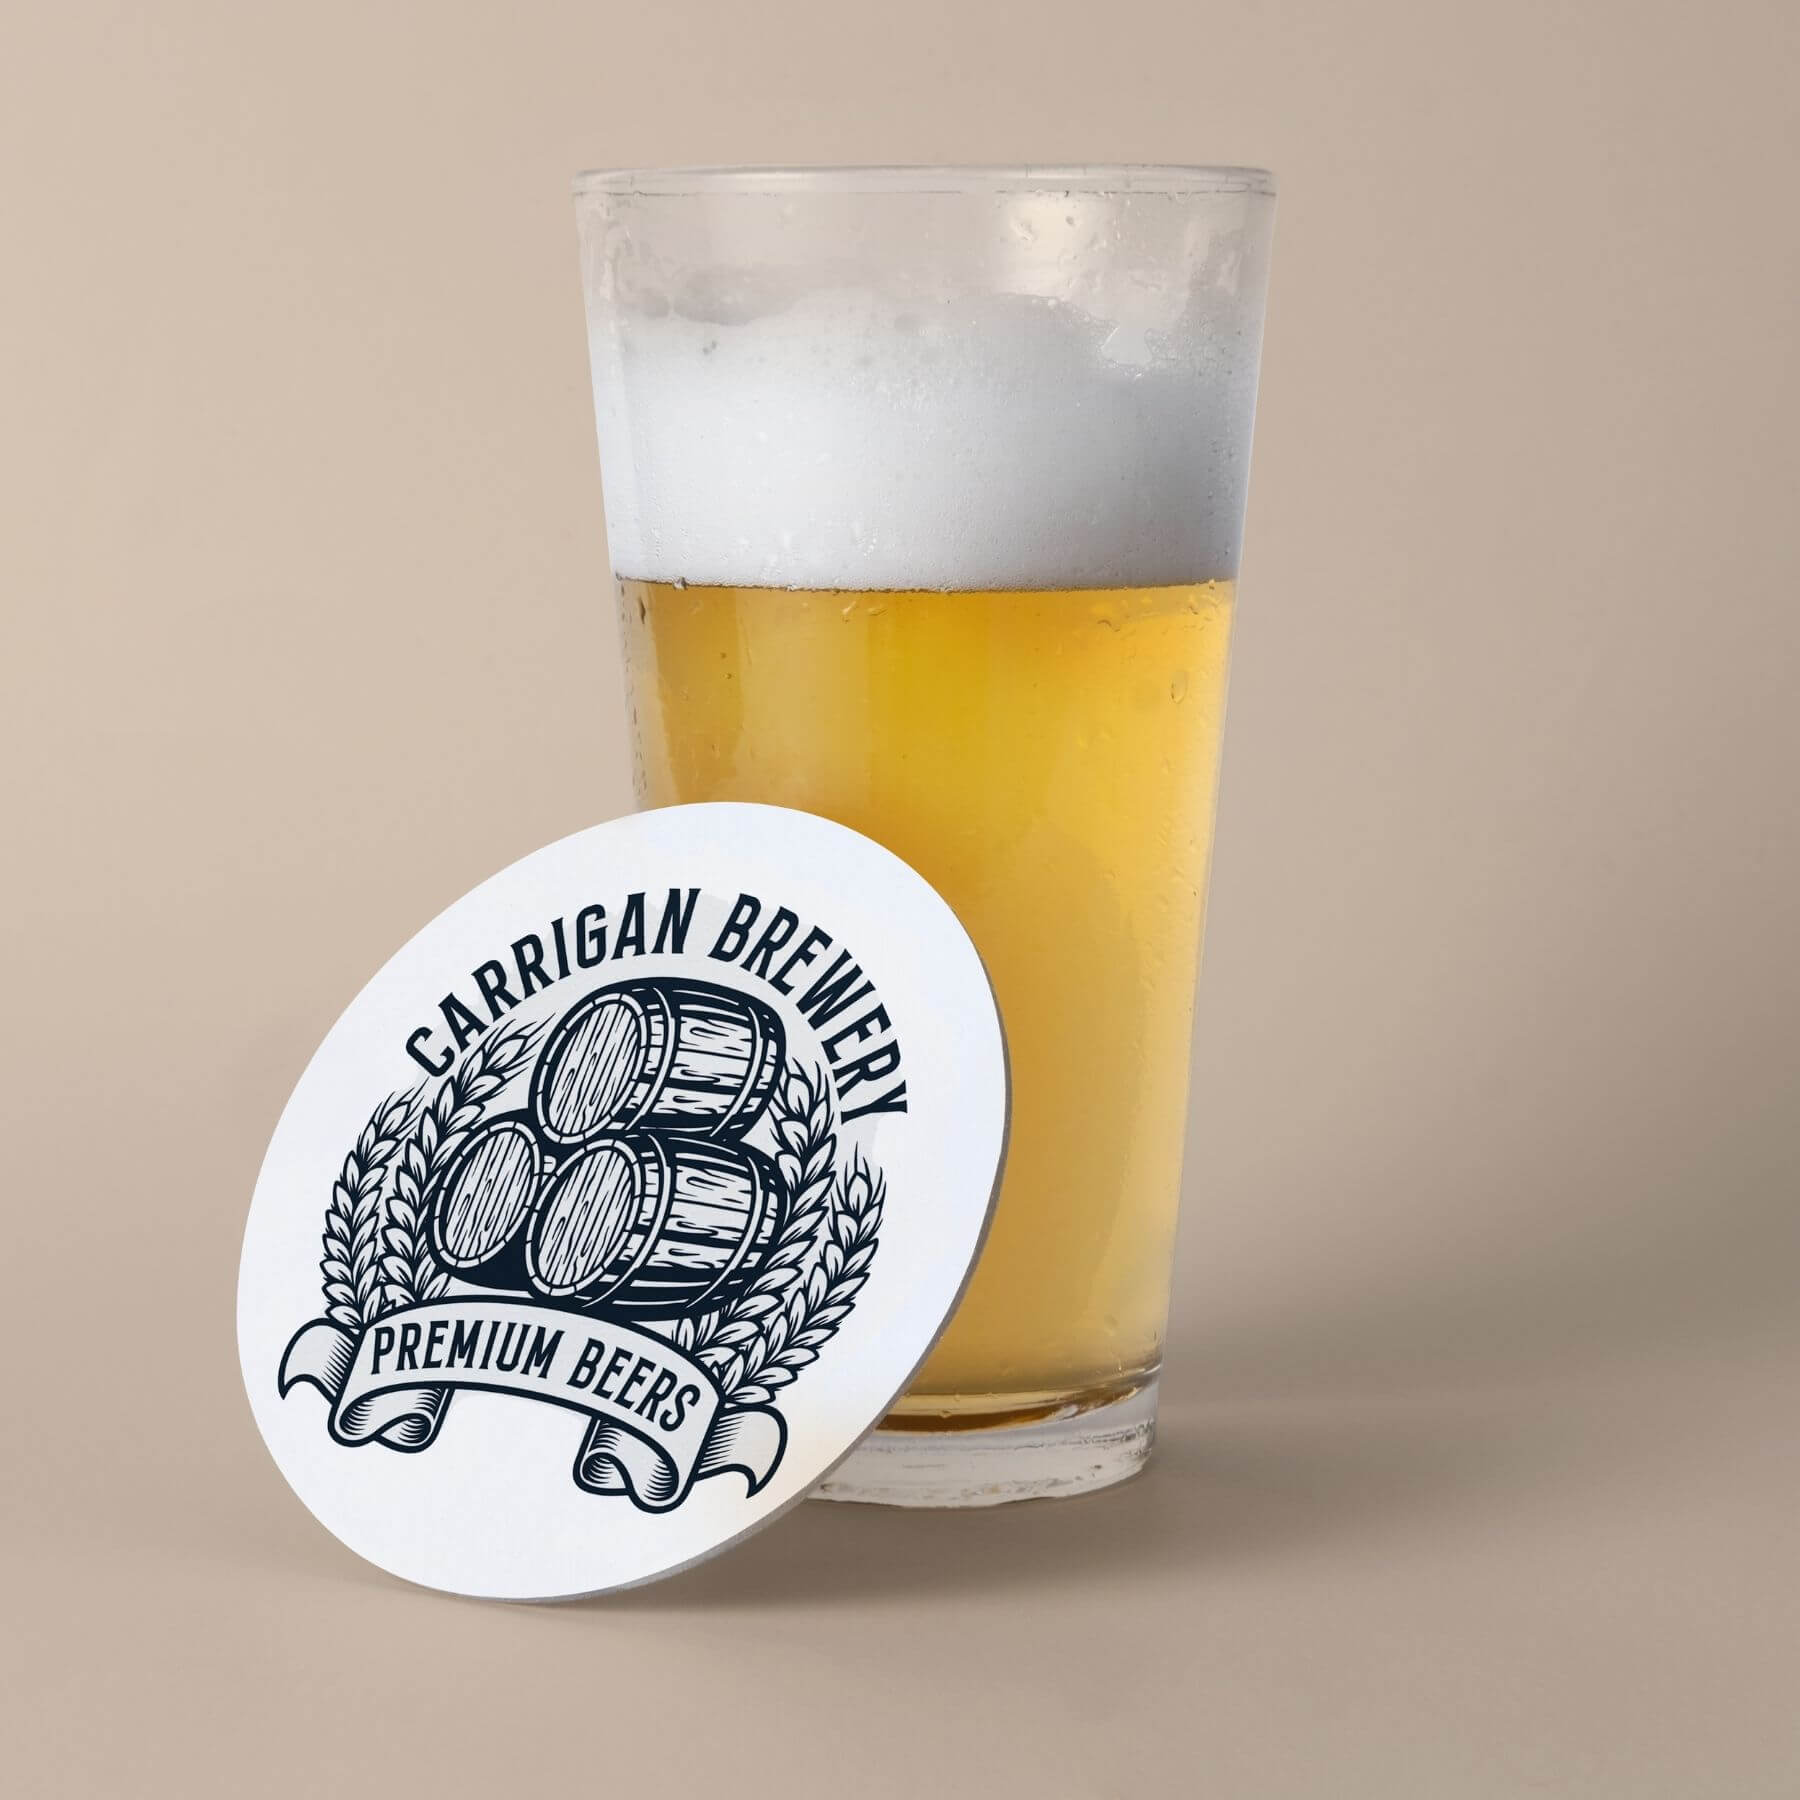 Carrigan Brewery - Carrigan Brewing Company Coaster Designed by Finnix Solutions